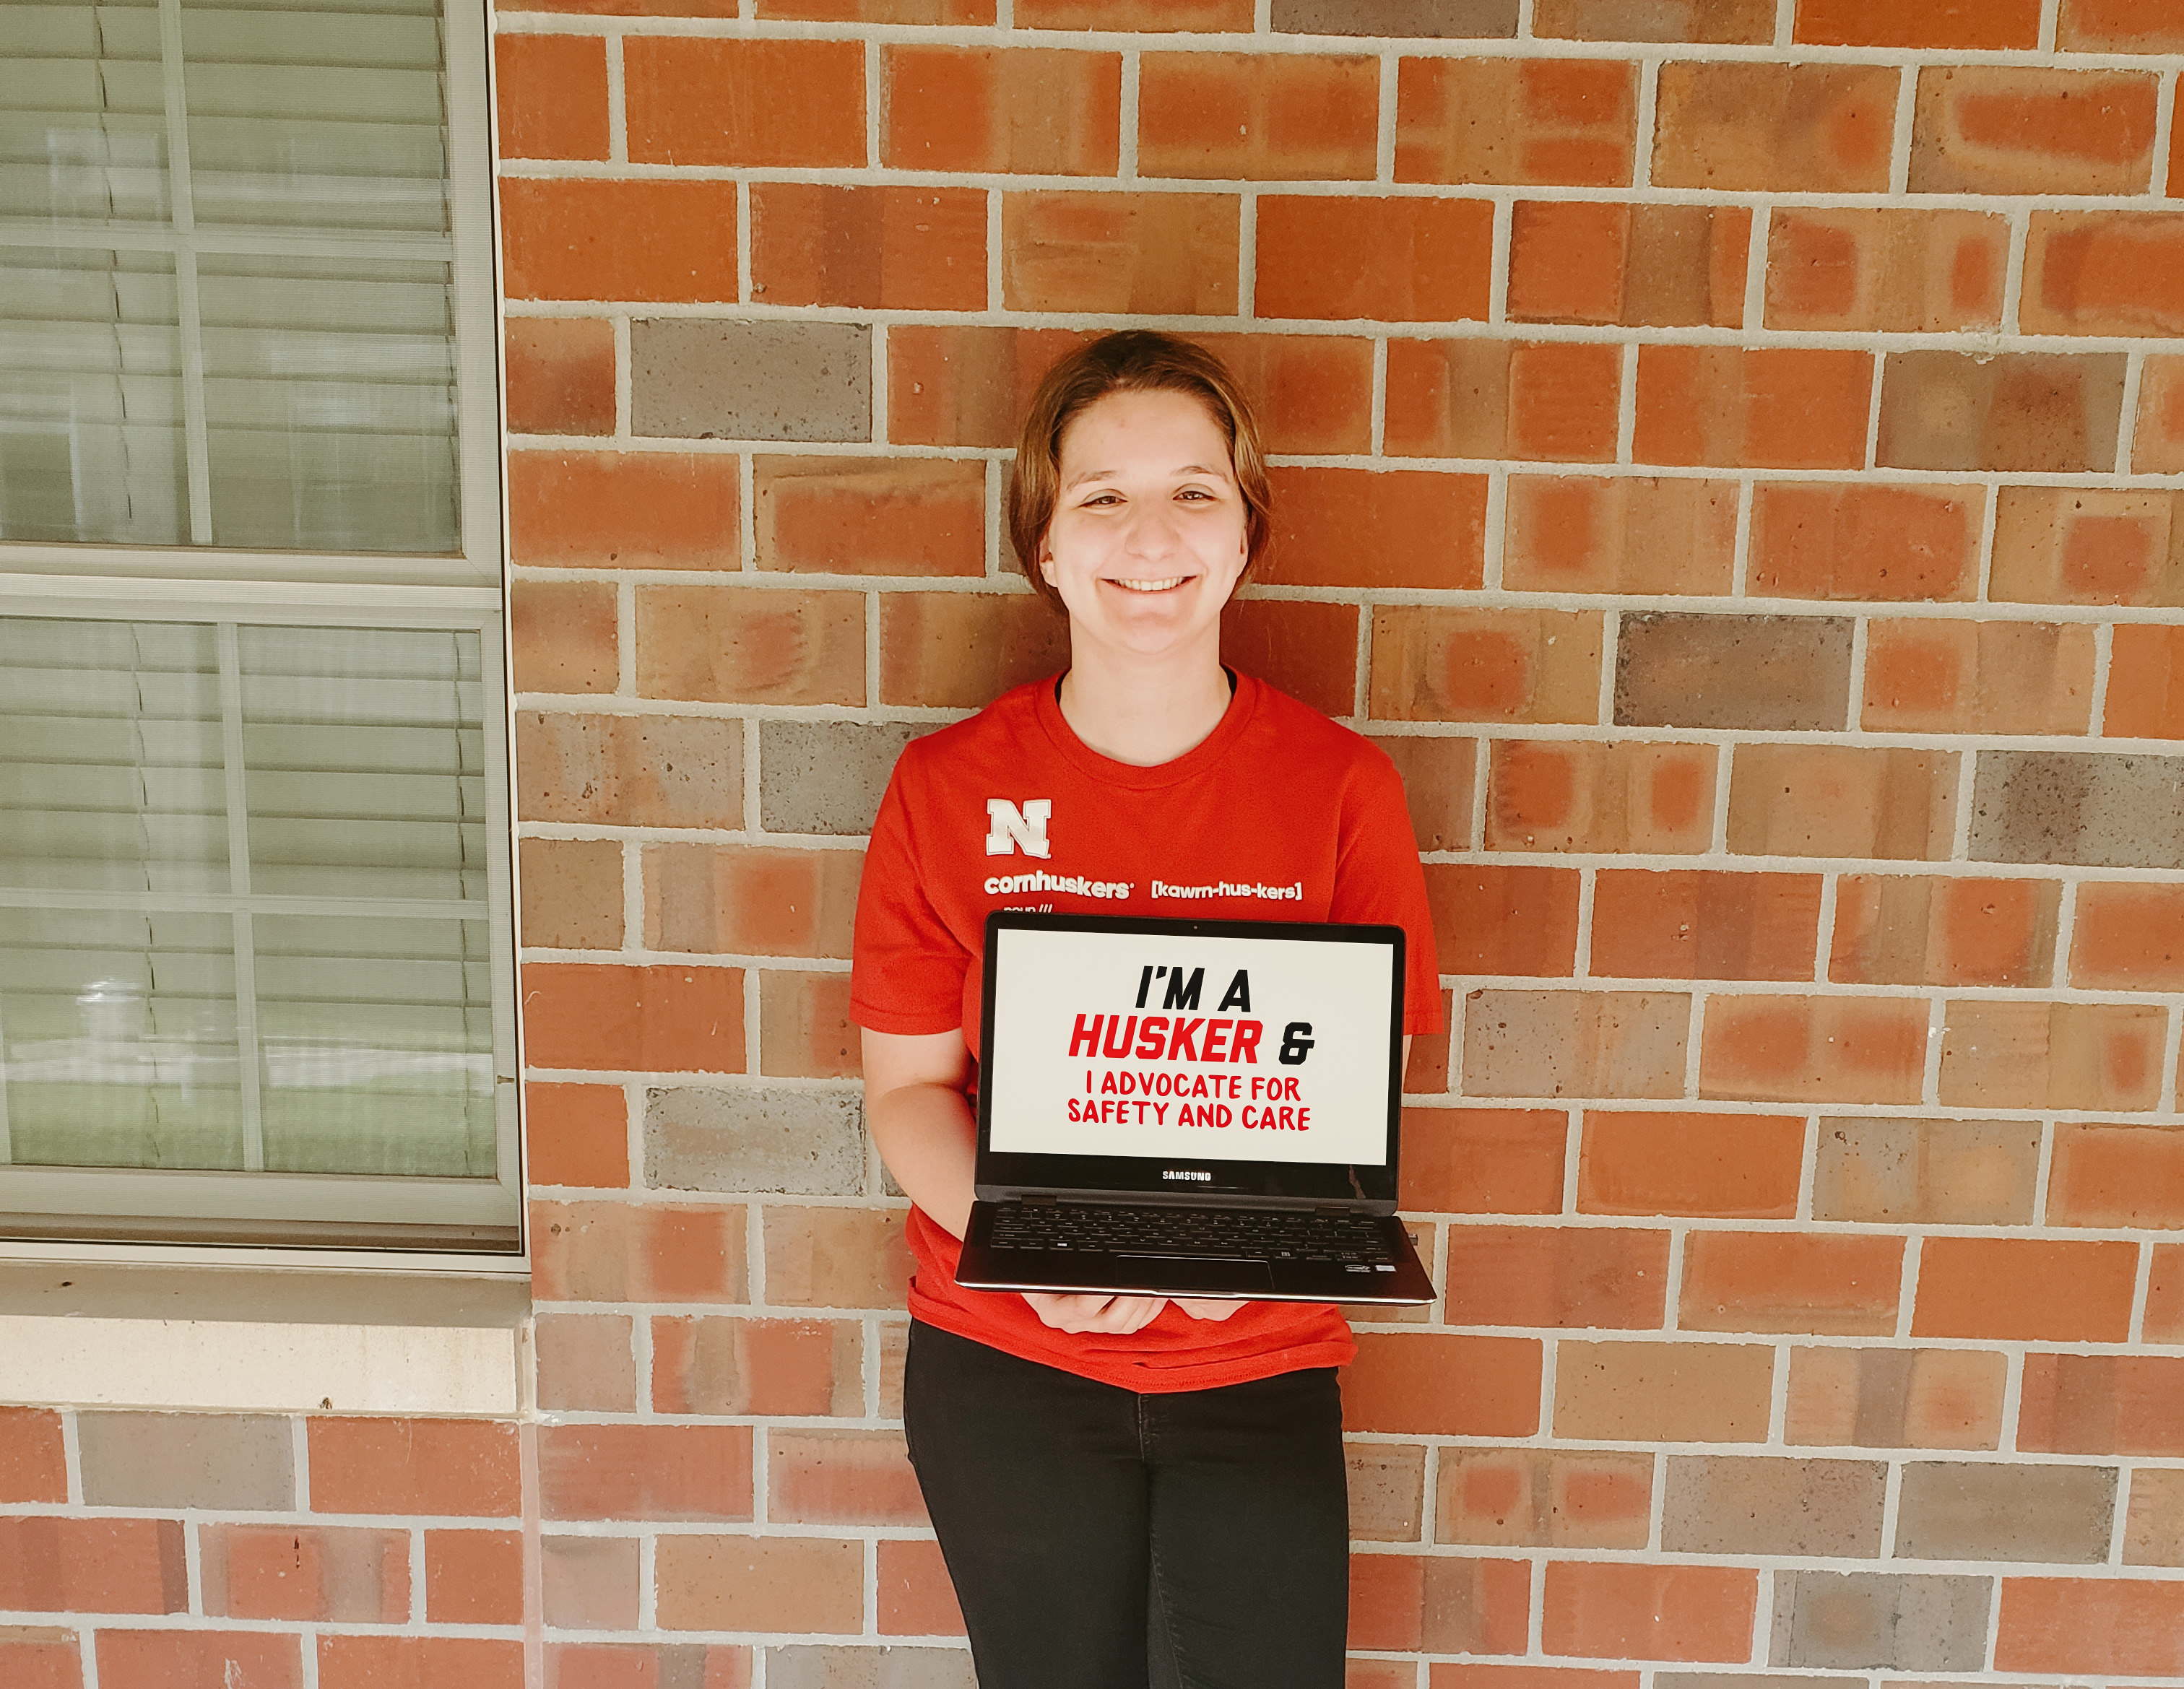 """Bianca holding a sign that says """"I'm a Husker and I advocate for safety and care."""""""